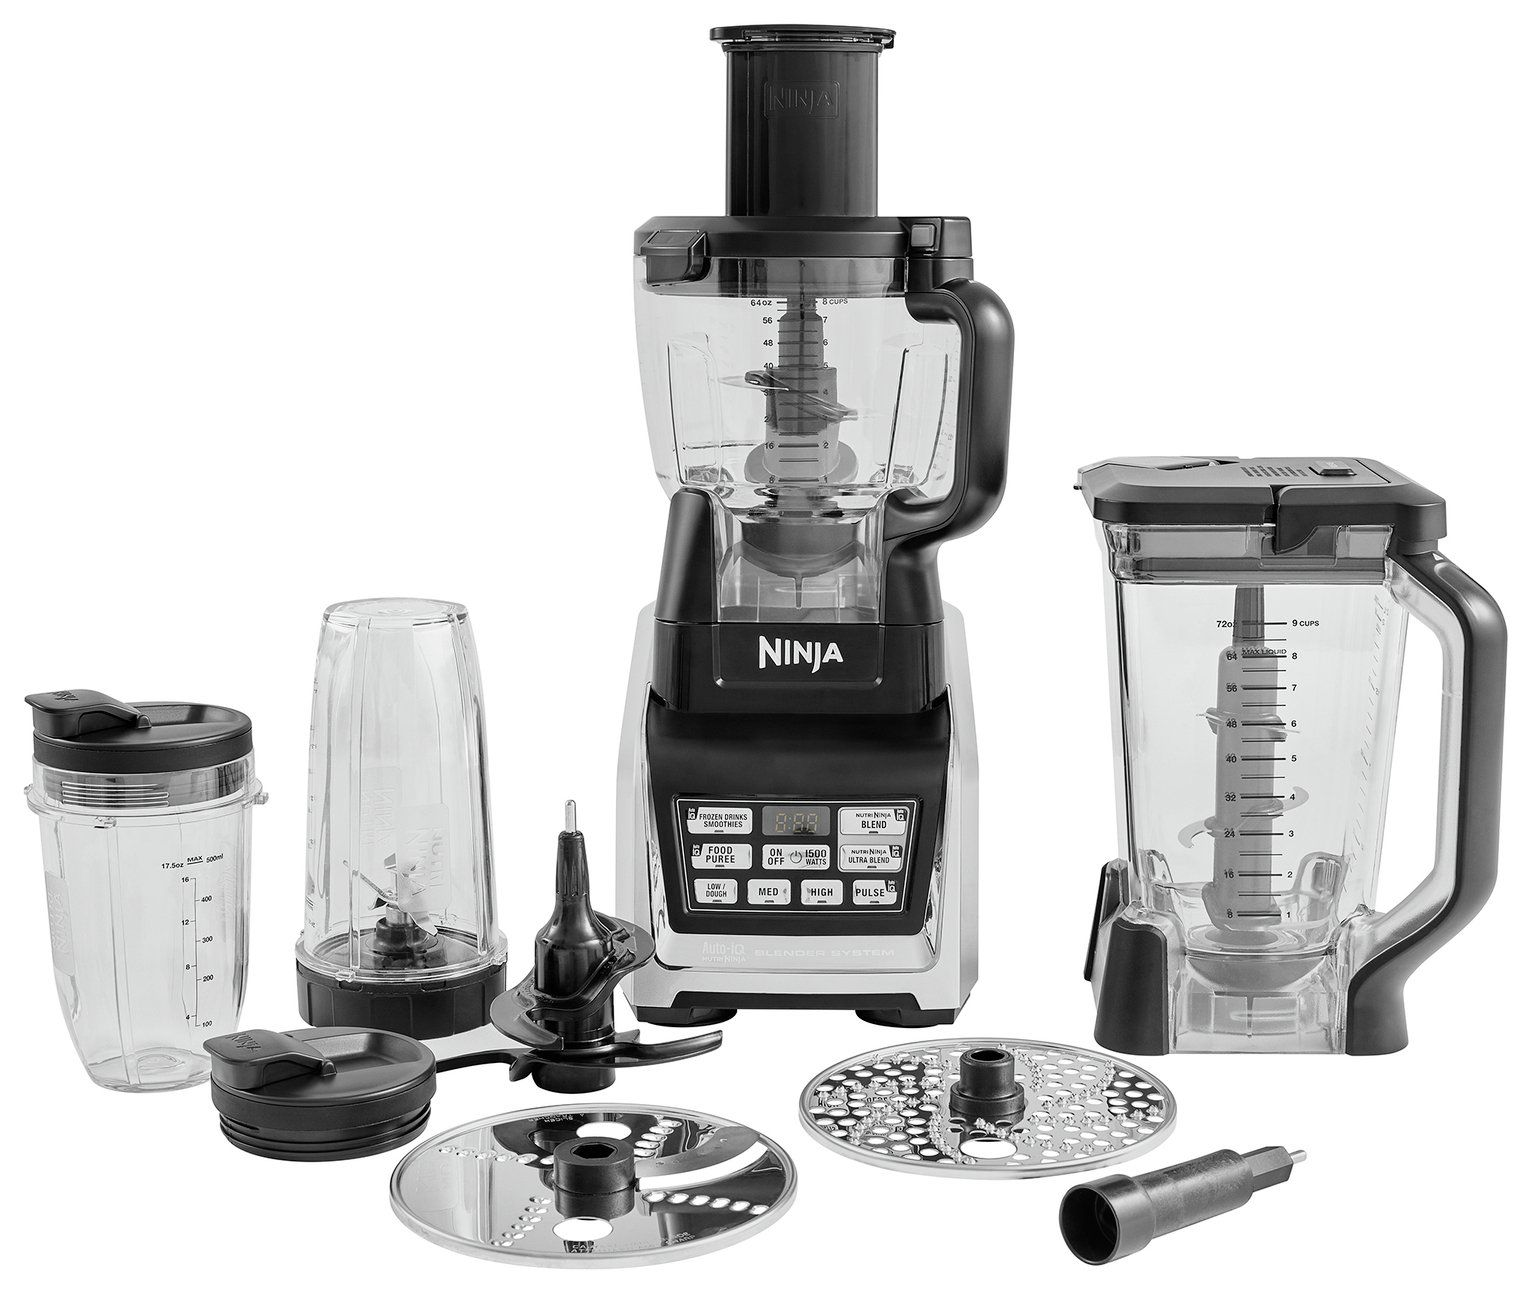 Ninja Blender and Food Processor System